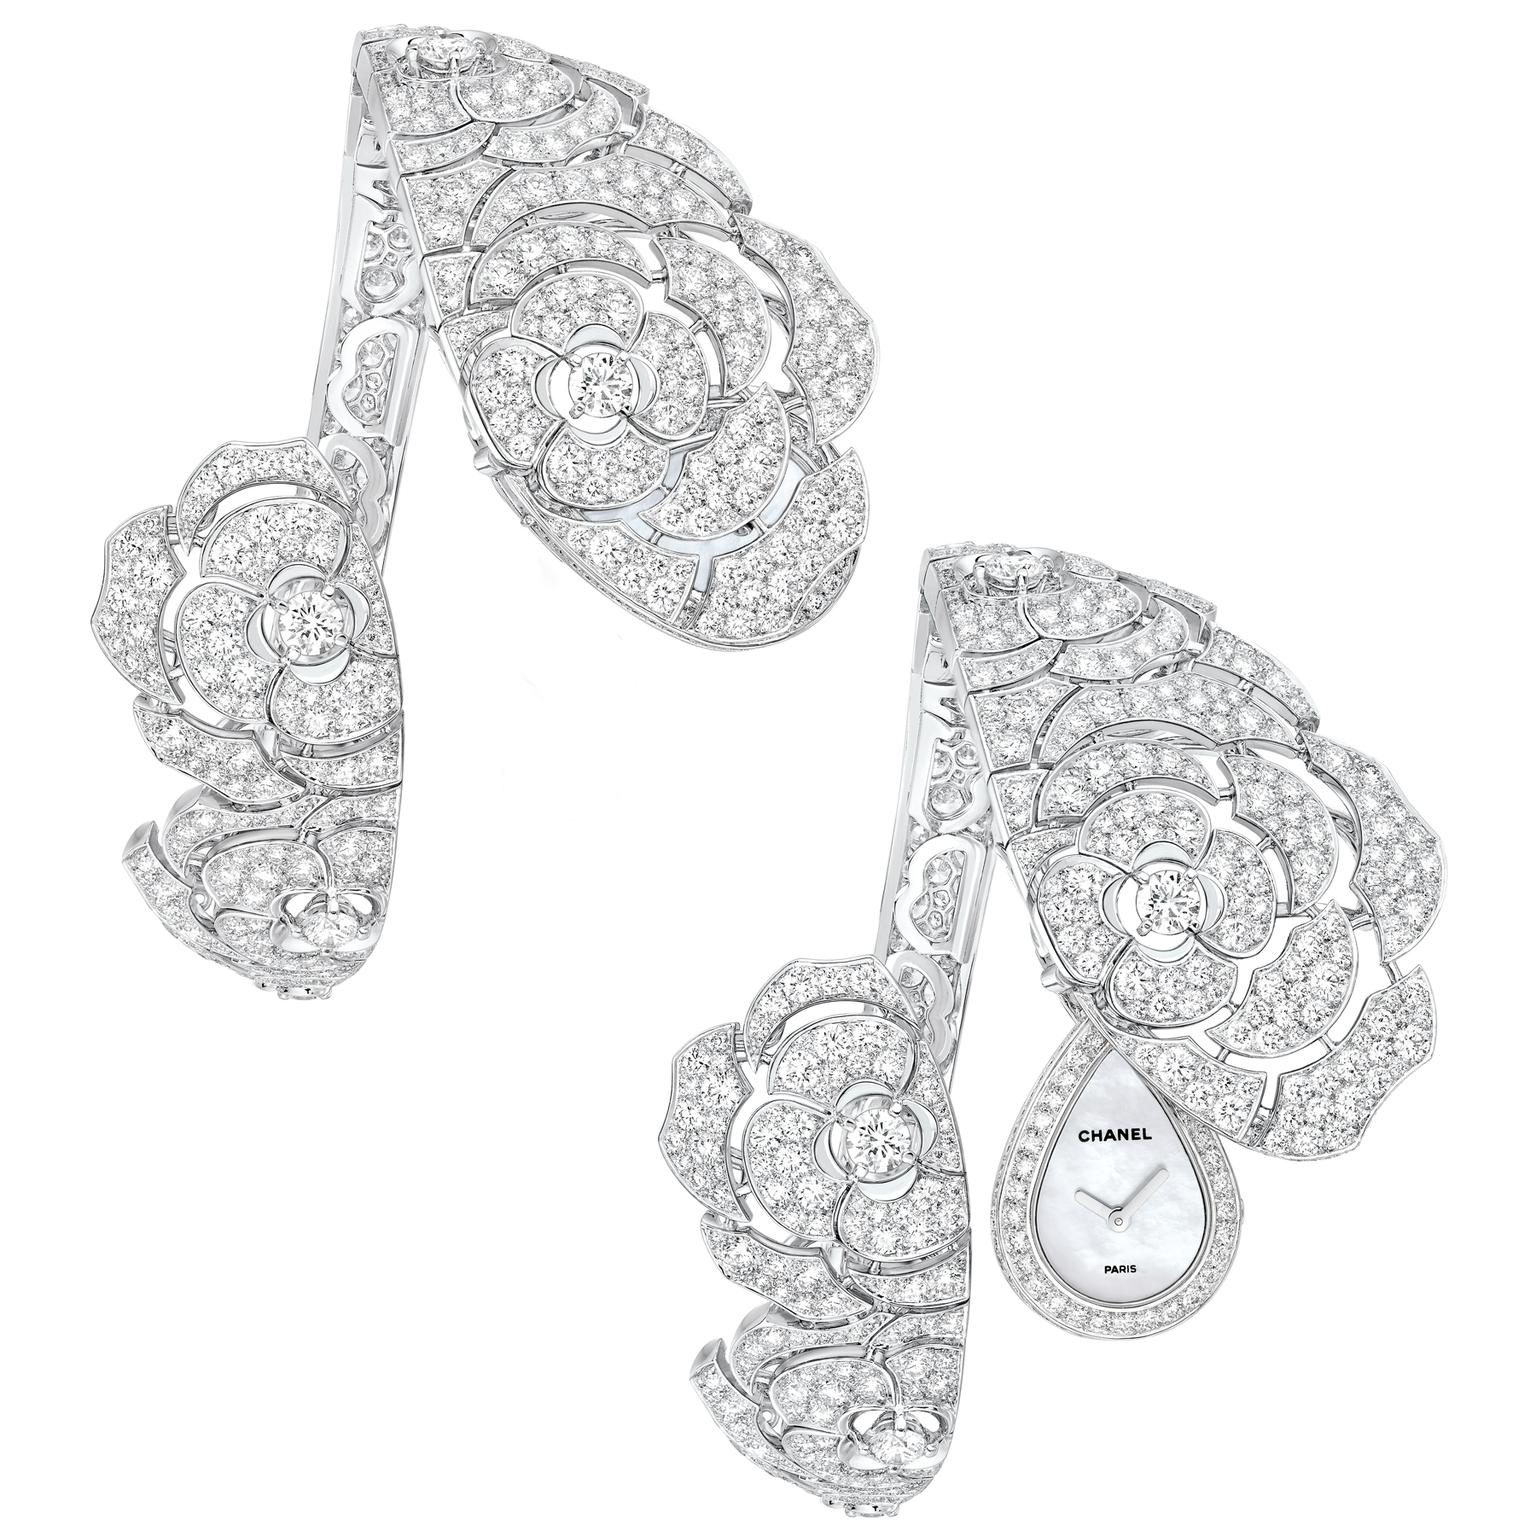 Chanel Gabrielle Chanel secret watch